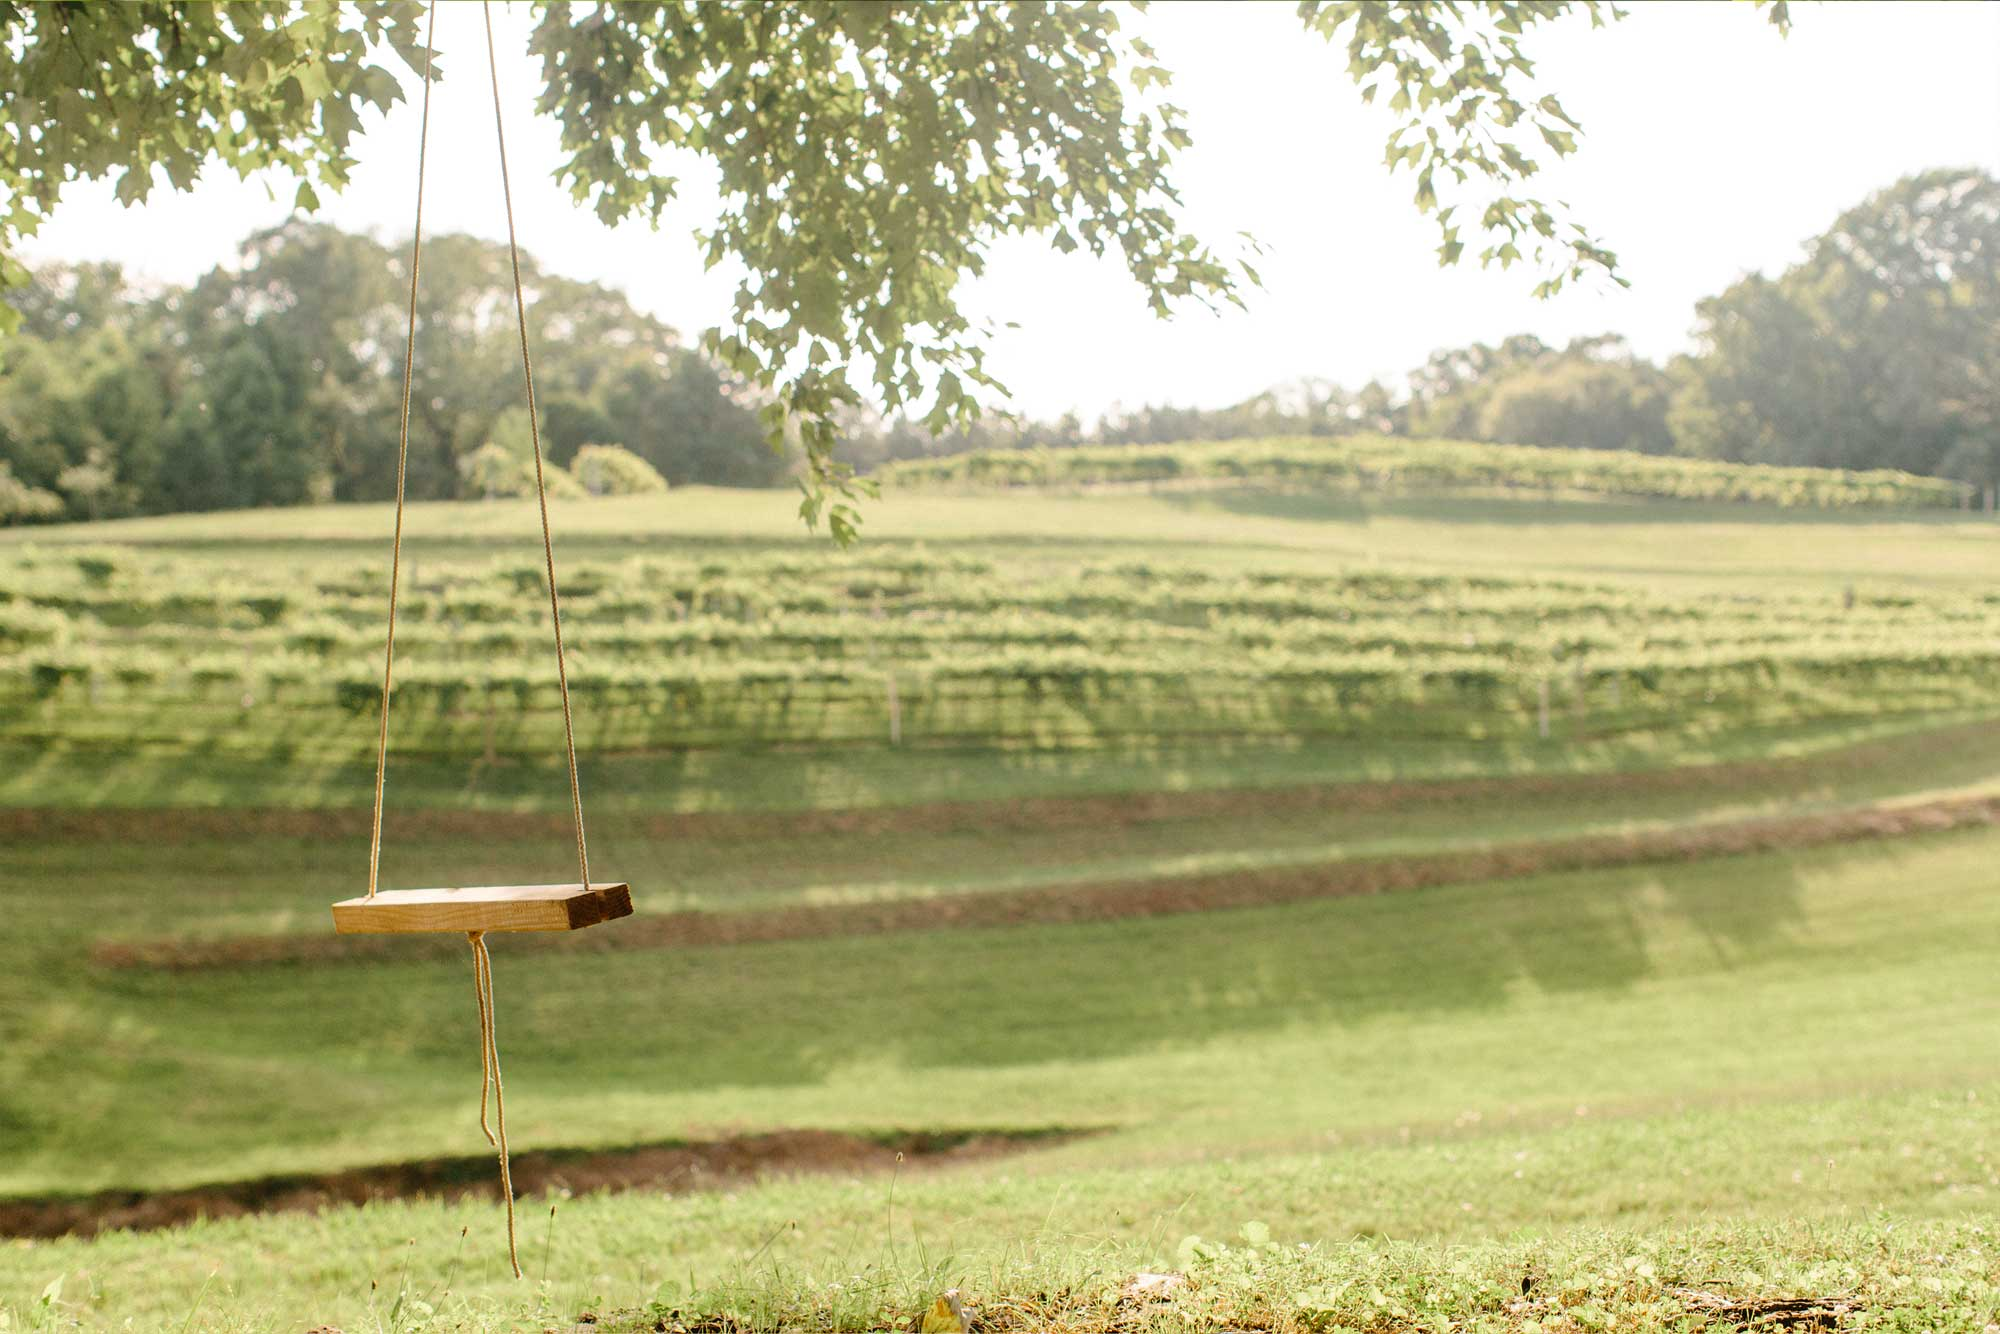 A swing at the vineyard